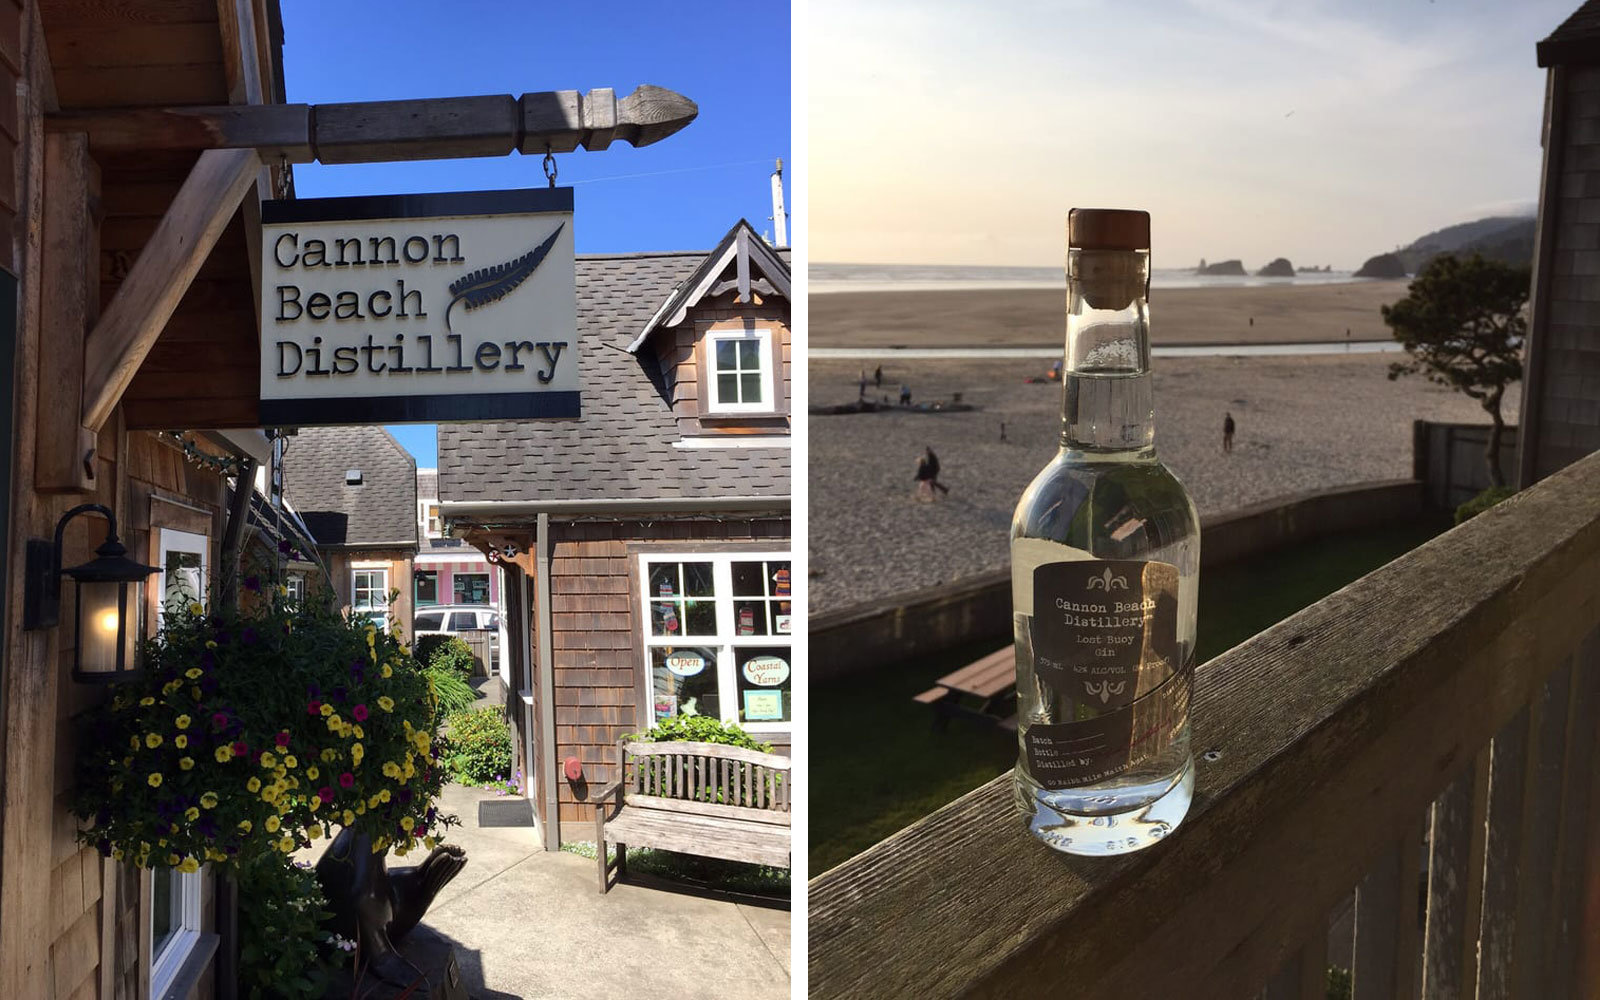 Cannon Beach Distillery, Cannon Beach, OR